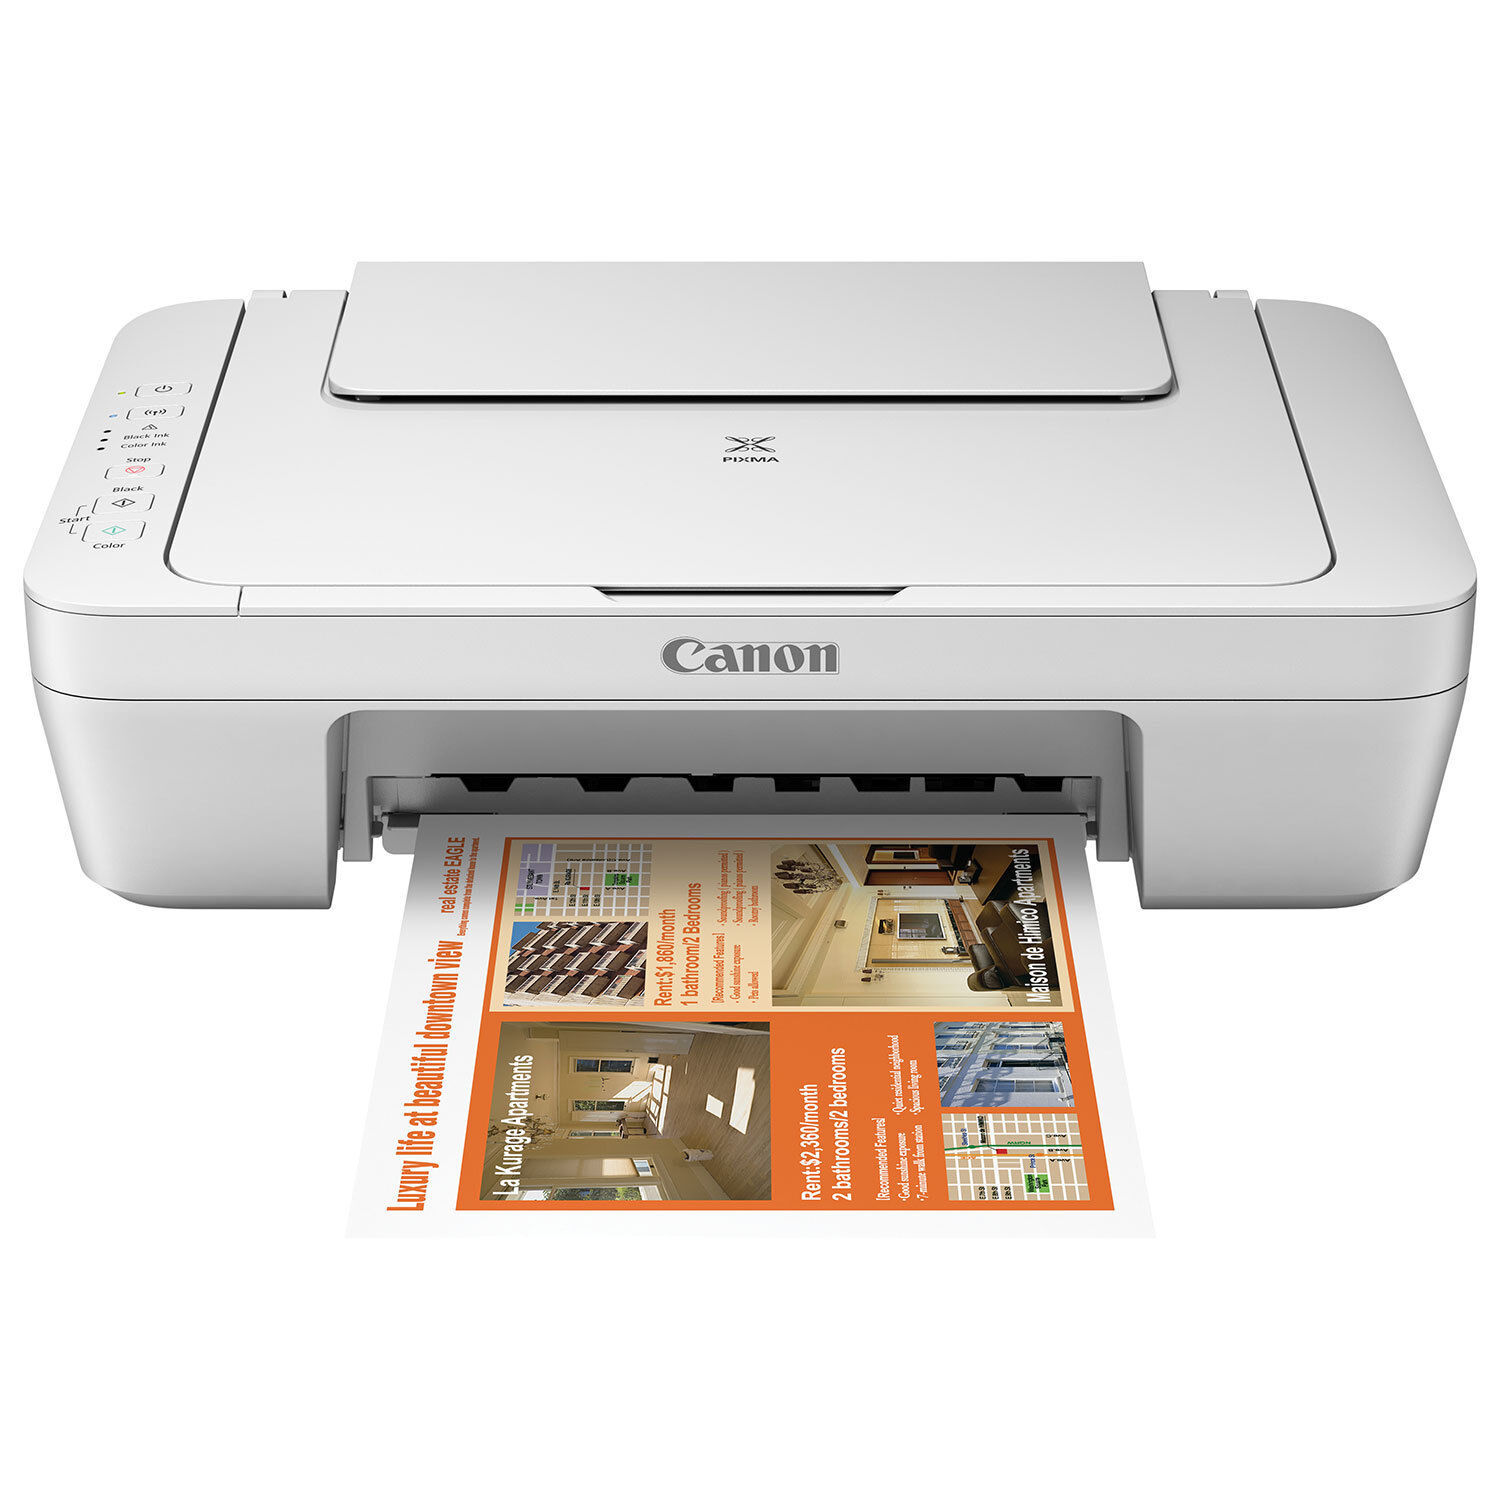 canon printer scanner copier manual